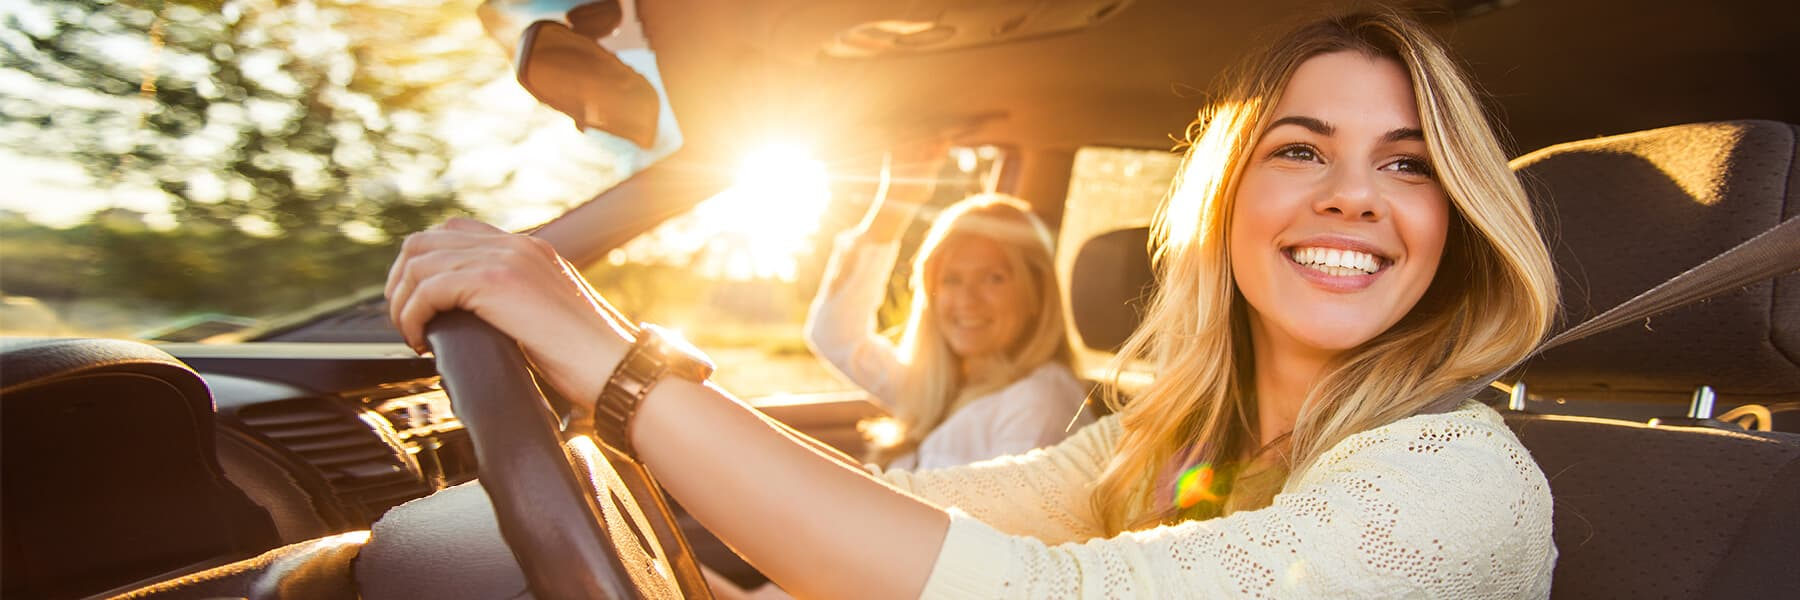 A smiling teenage girl in a white shirt is driving while a woman sits in the passenger seat with a sun glare behind them.